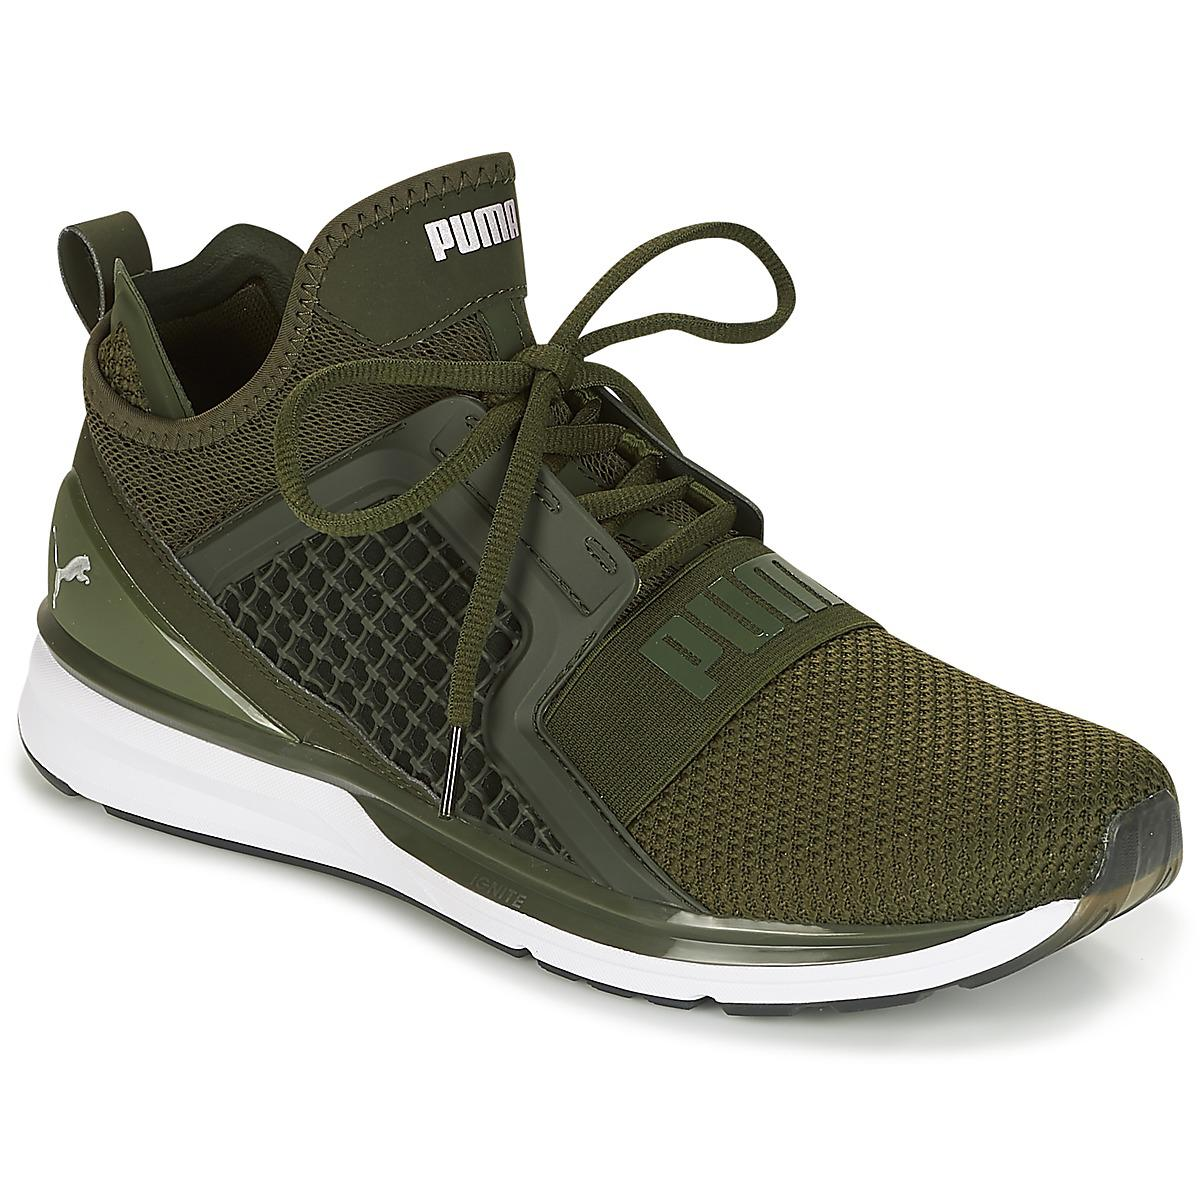 Puma ignite limitless weave running trainers in green for men lyst jpg  1200x1200 Ignite pumas green 1b31aaa8d